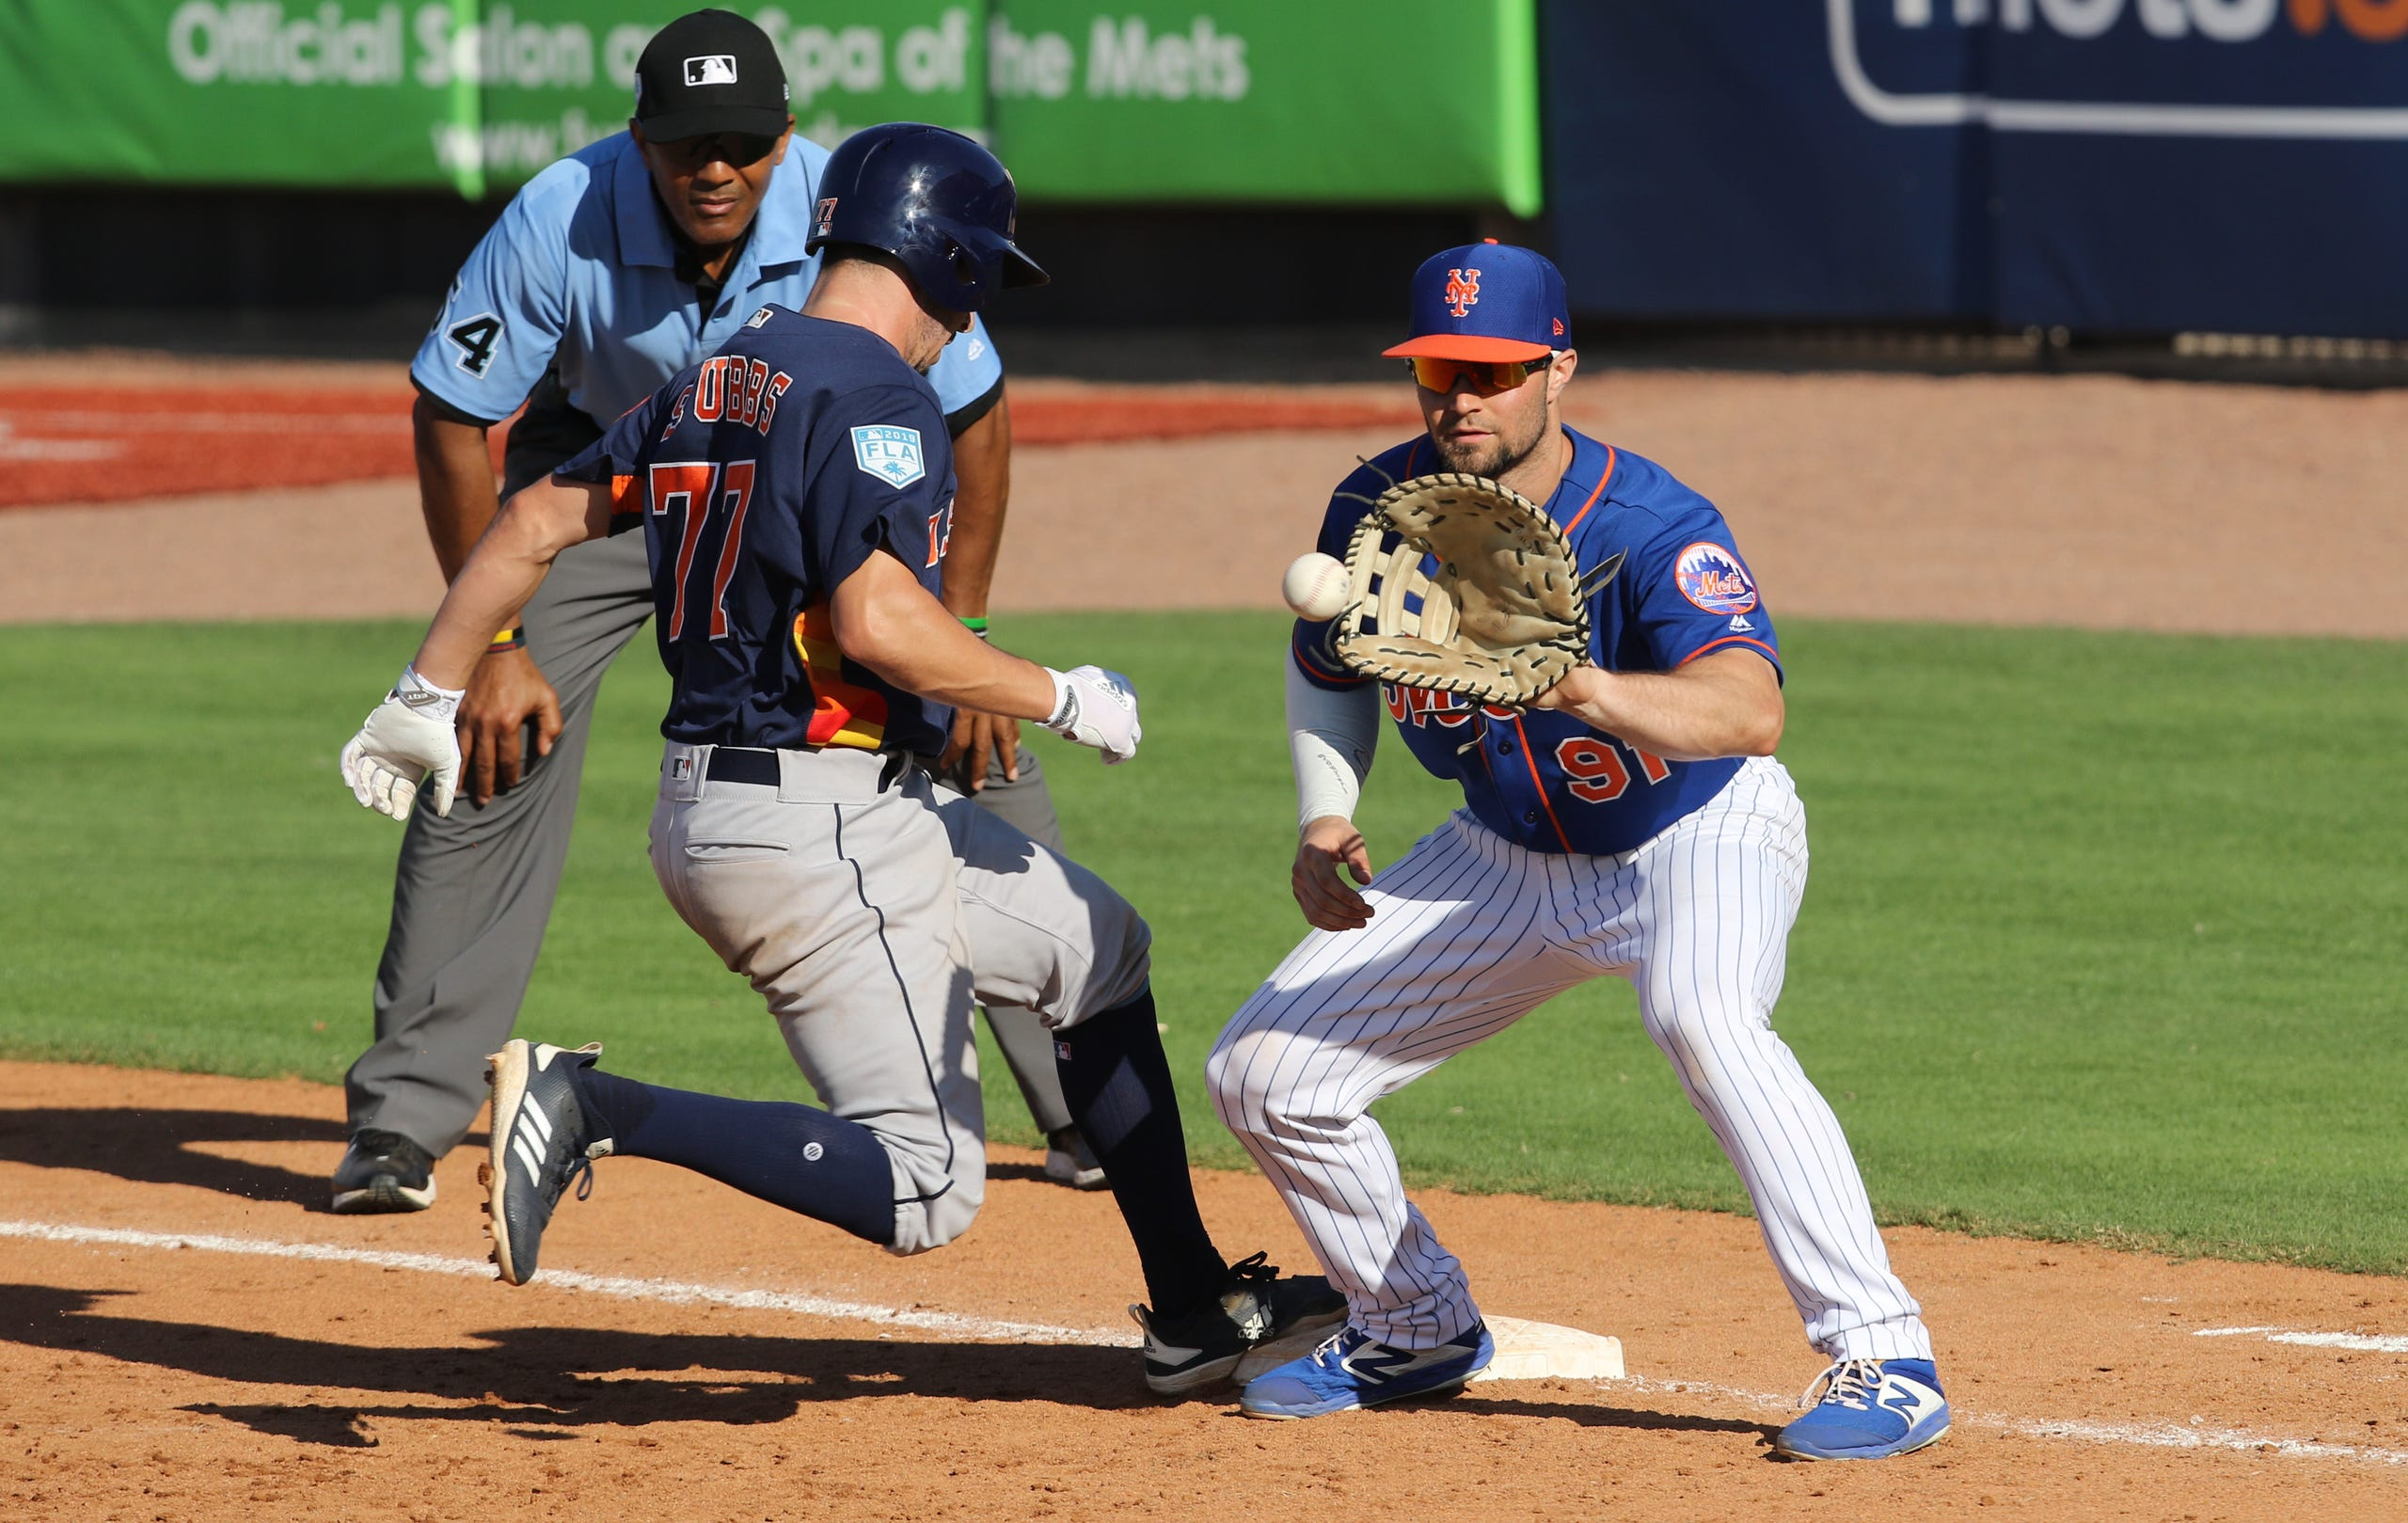 NY Mets spring training March 2, 2019